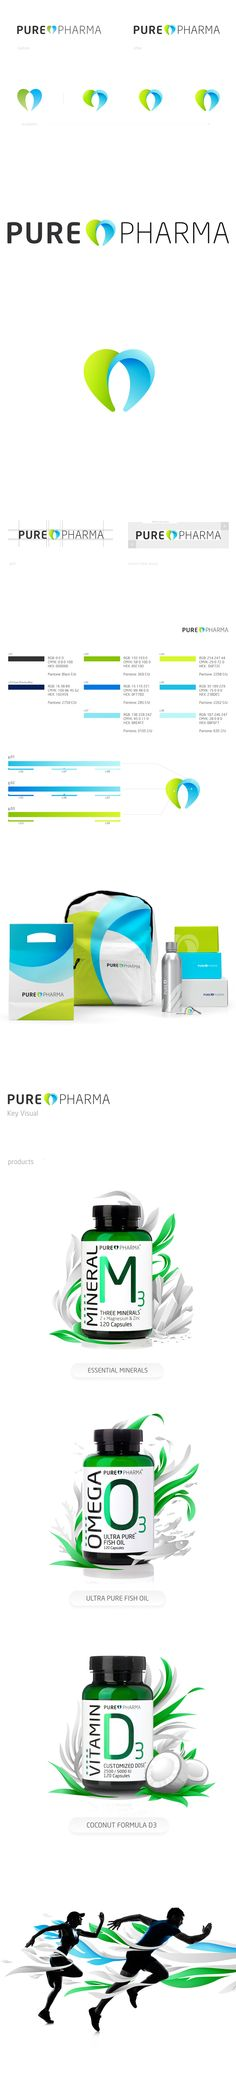 PurePharma by Fuse Collective , via Behance